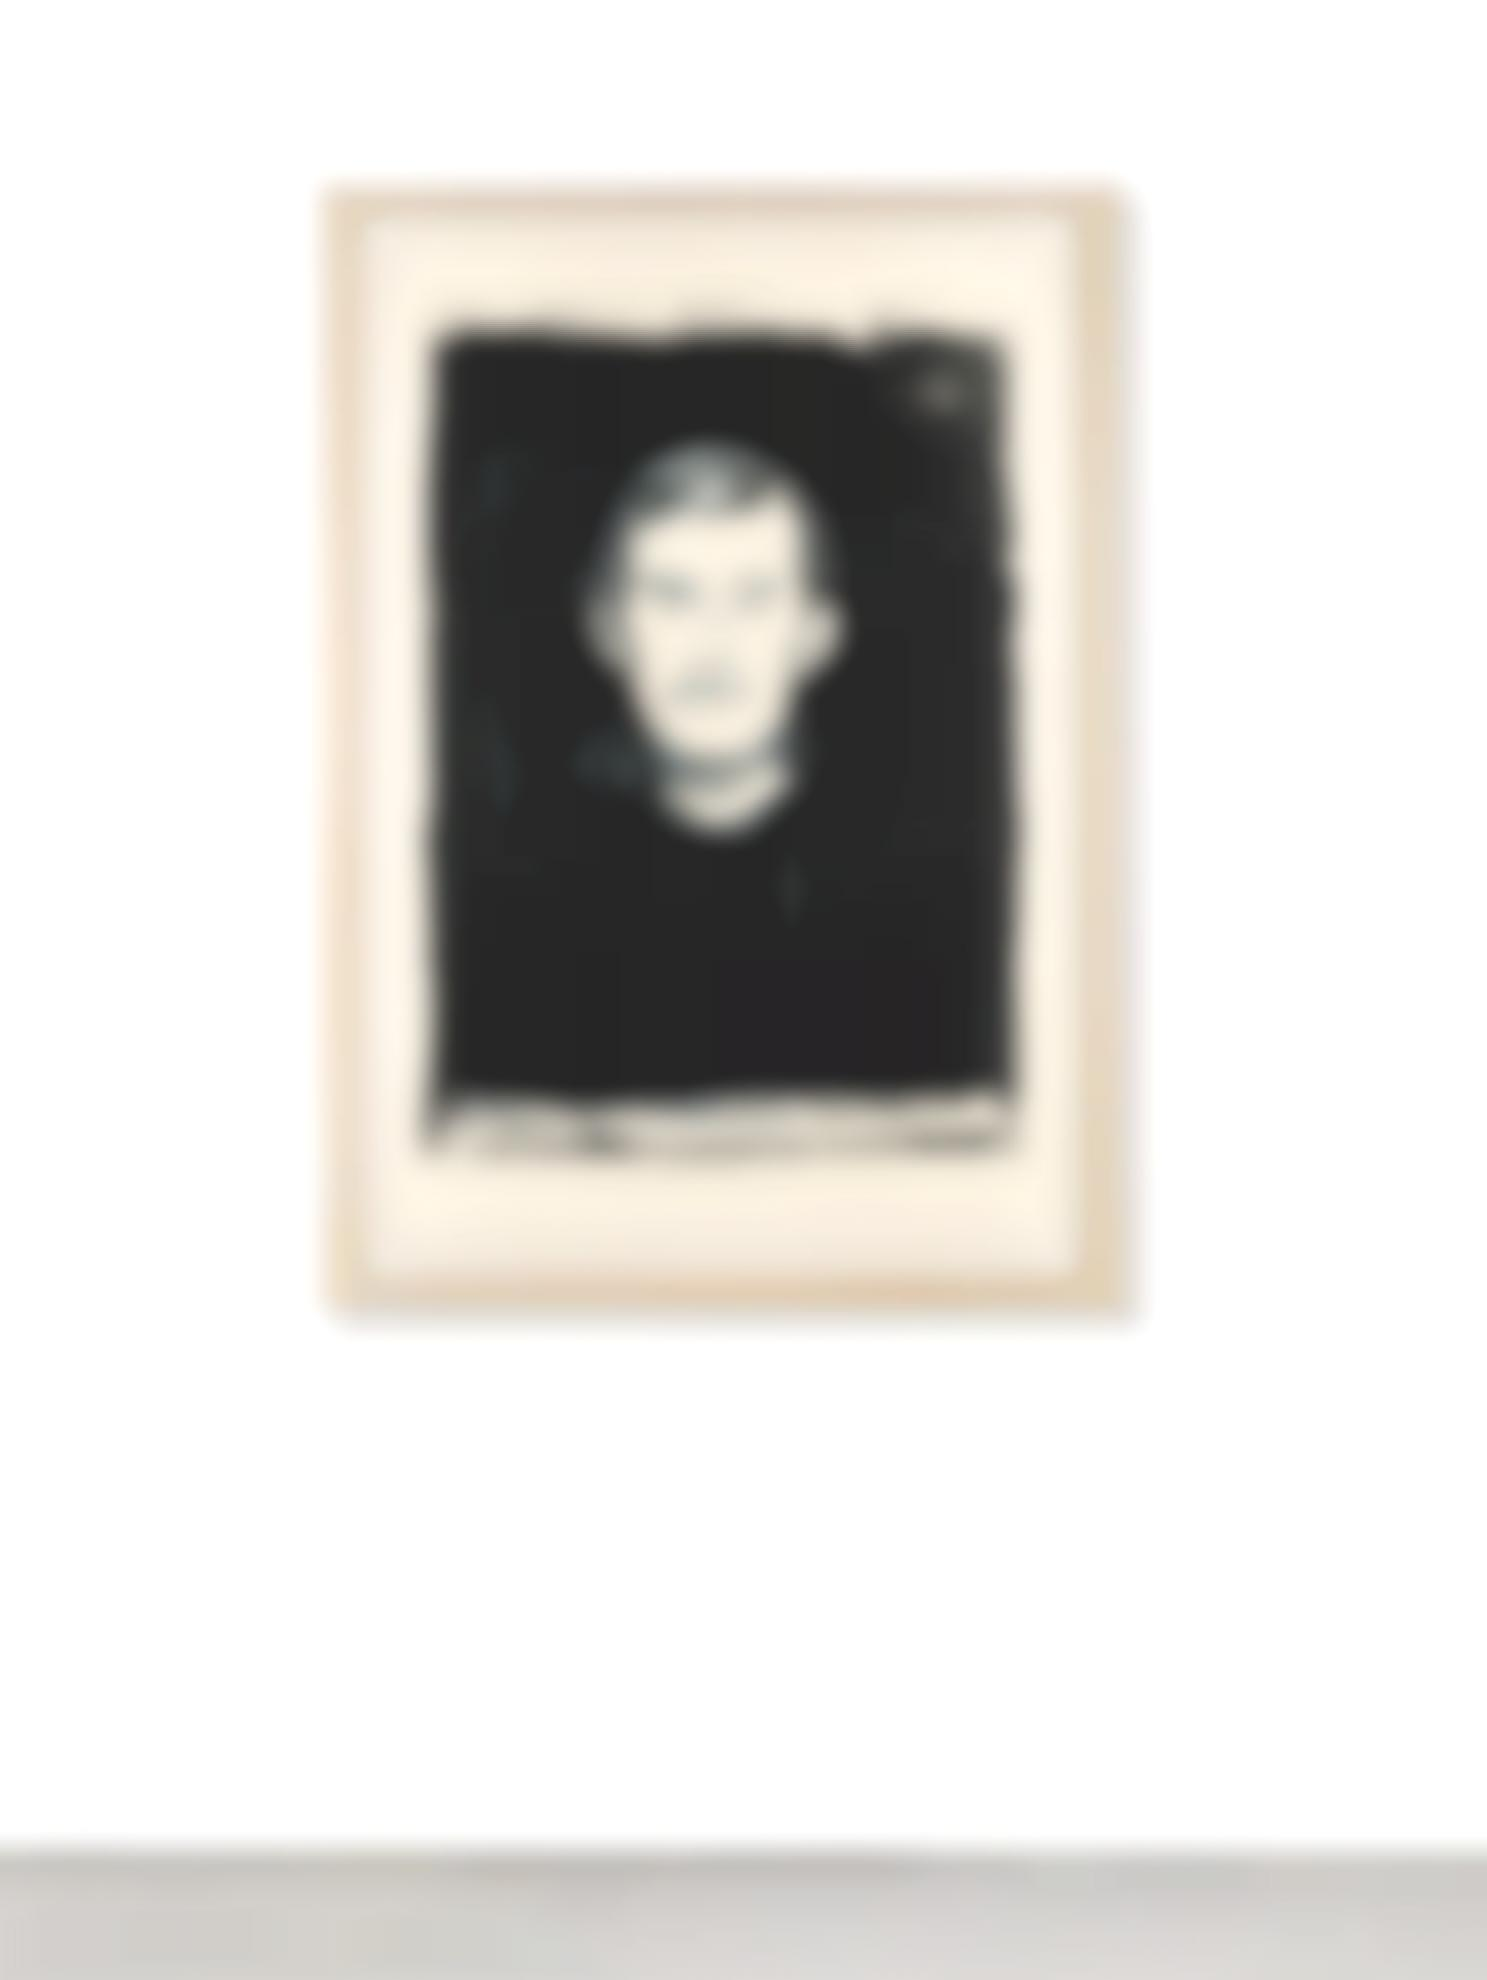 Andy Warhol-Self-Portrait With Skeletons Arm (After Munch) (F. & S. IIIa.61[B])-1984